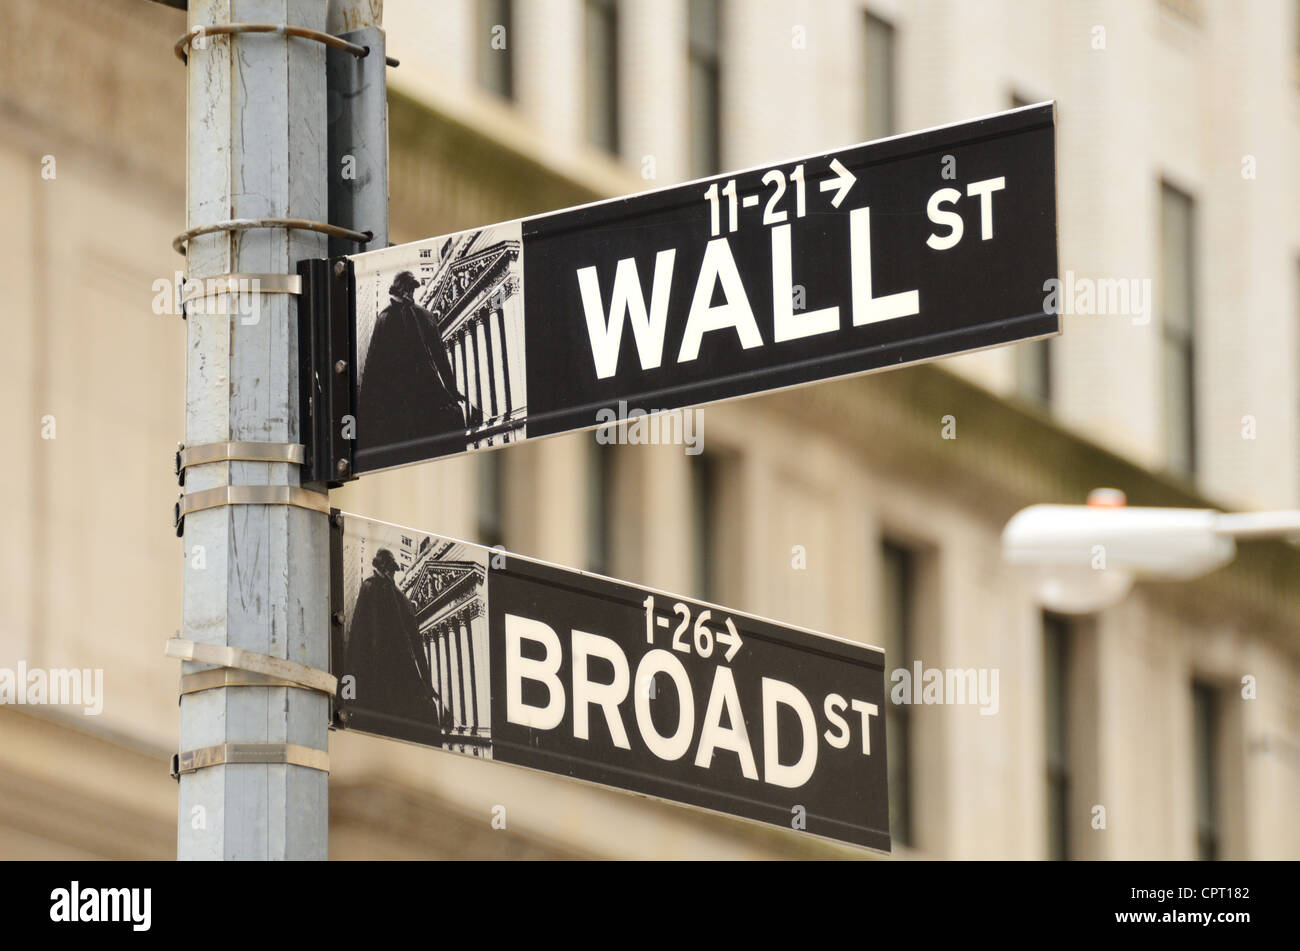 Street sign for Wall Street and Broad Street, the heart of the Financial District of New York City. - Stock Image